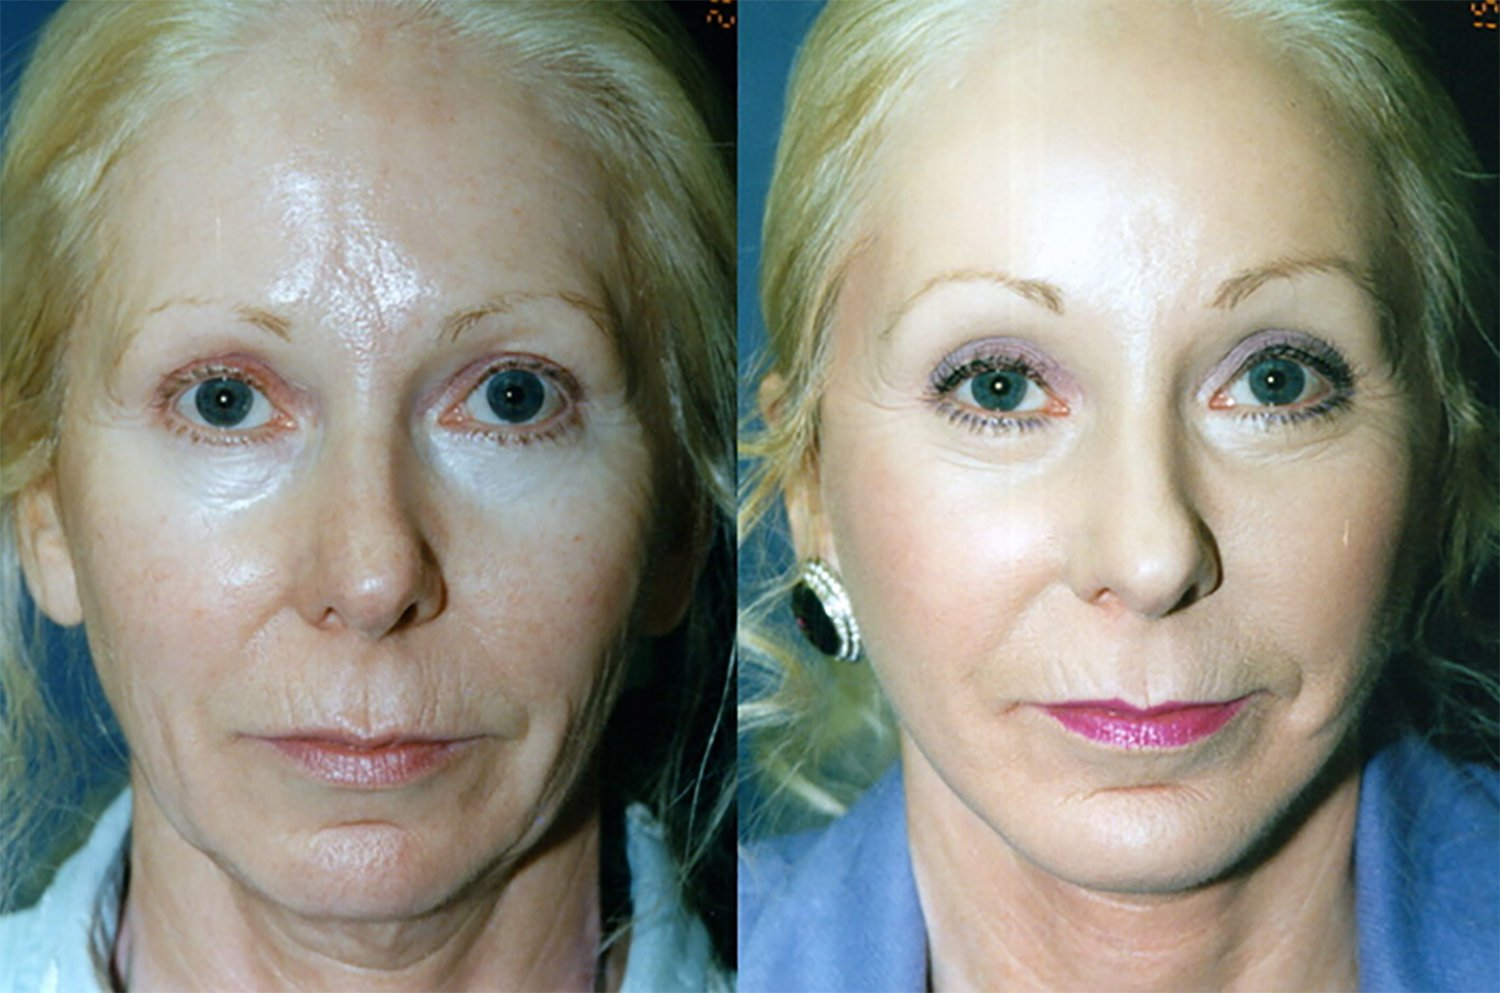 54-year-old facelift, upper & lower eyelids, perioral peel, chin implant one year